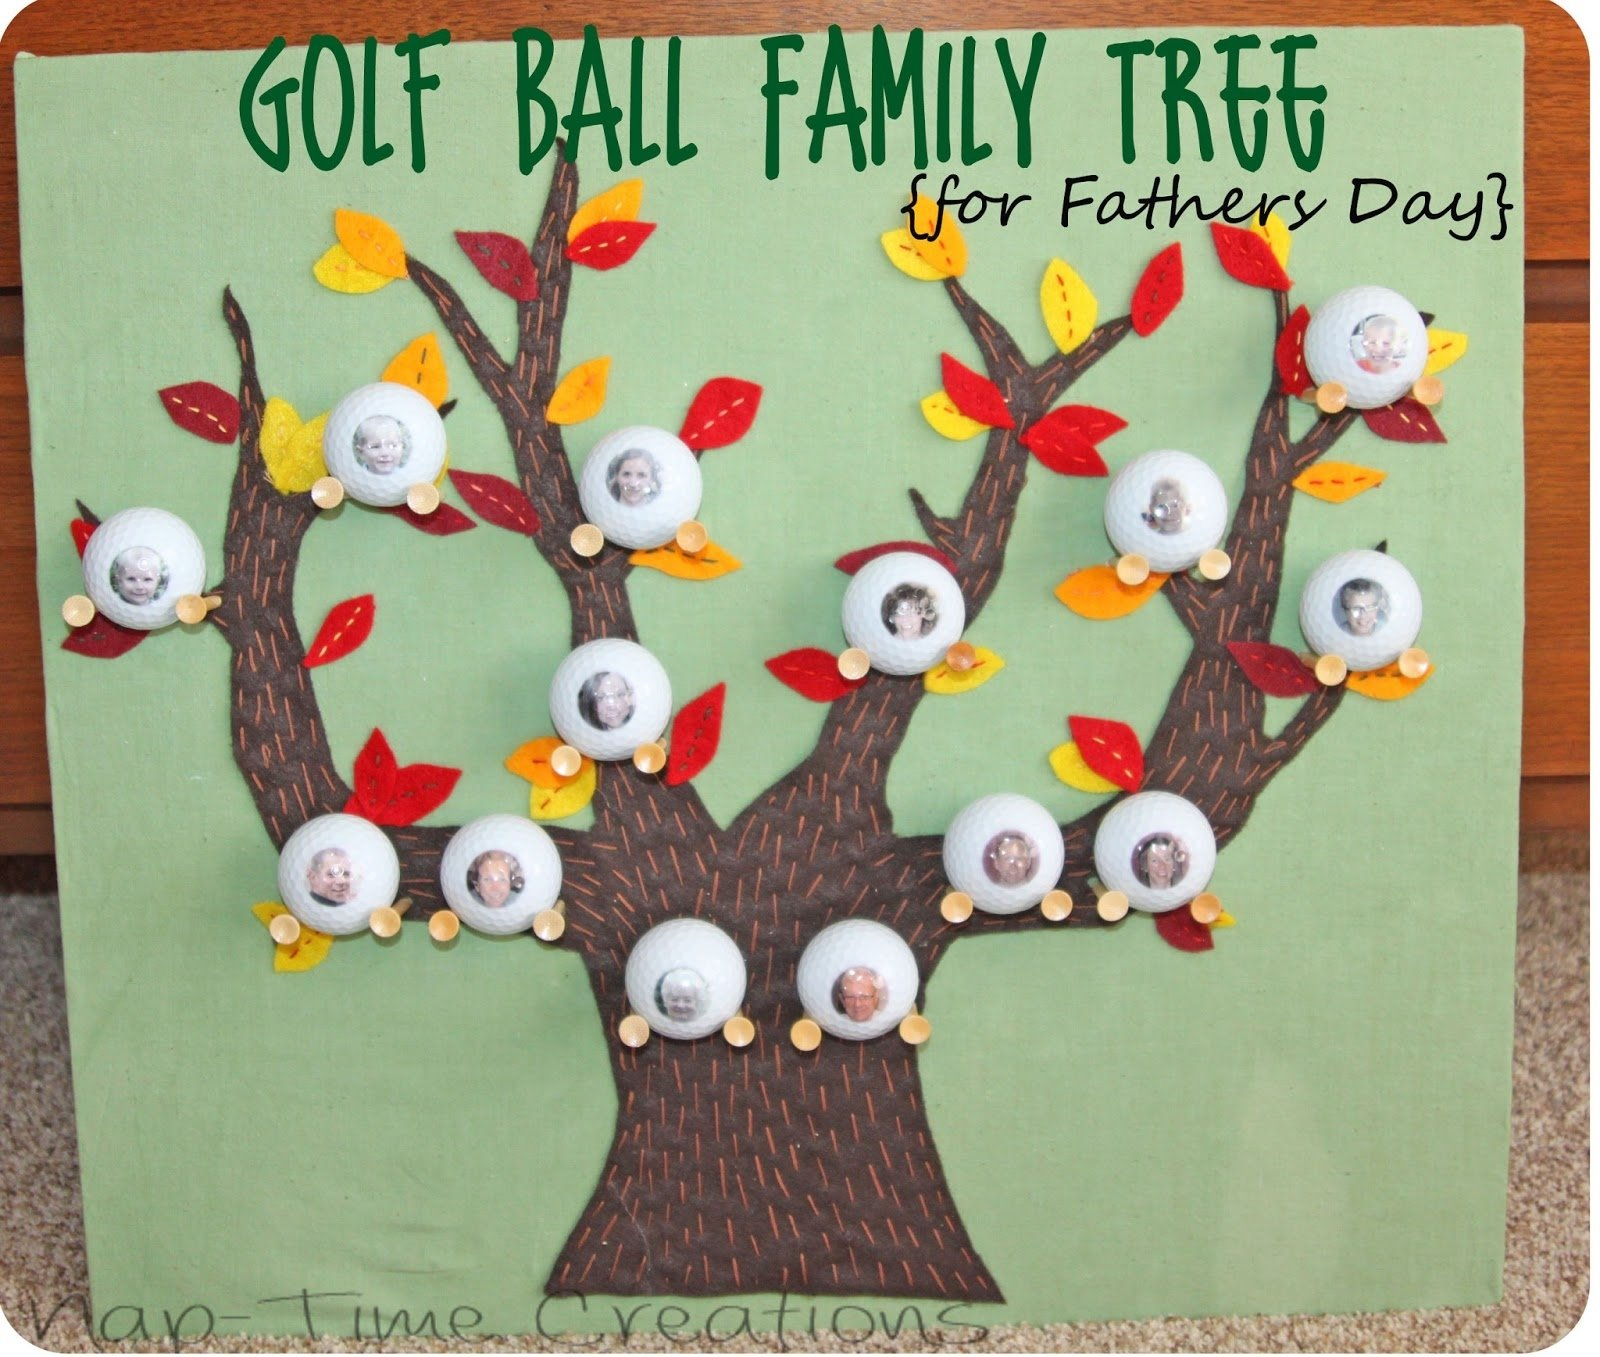 golf ball family tree {father's day gift idea} - nap-time creations